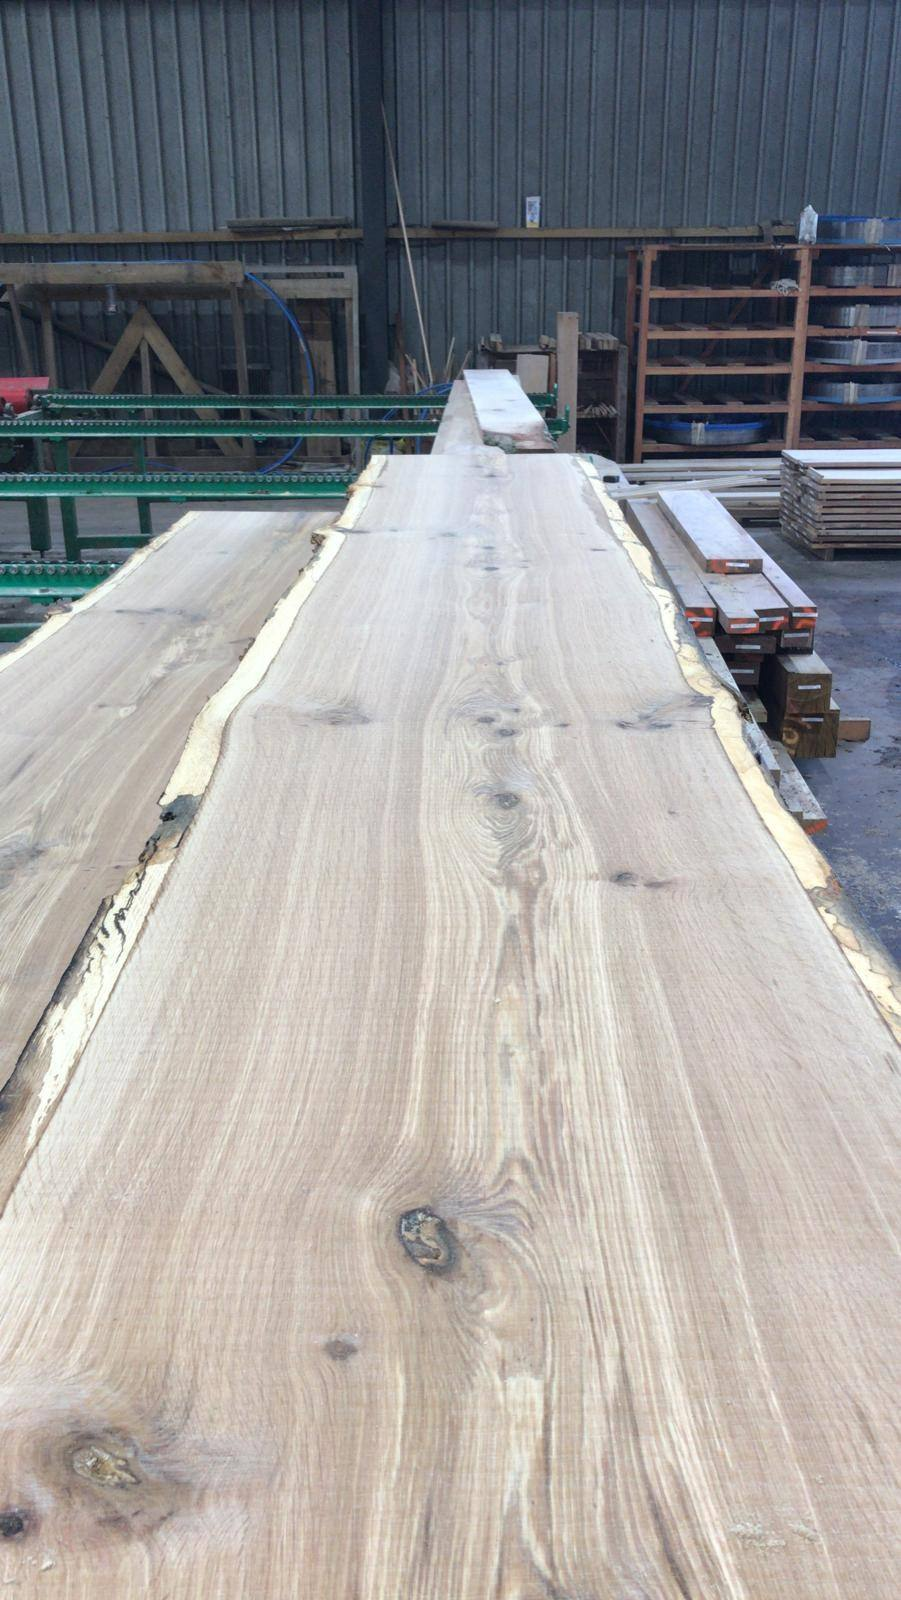 Image for: 4 Meters Long Oak